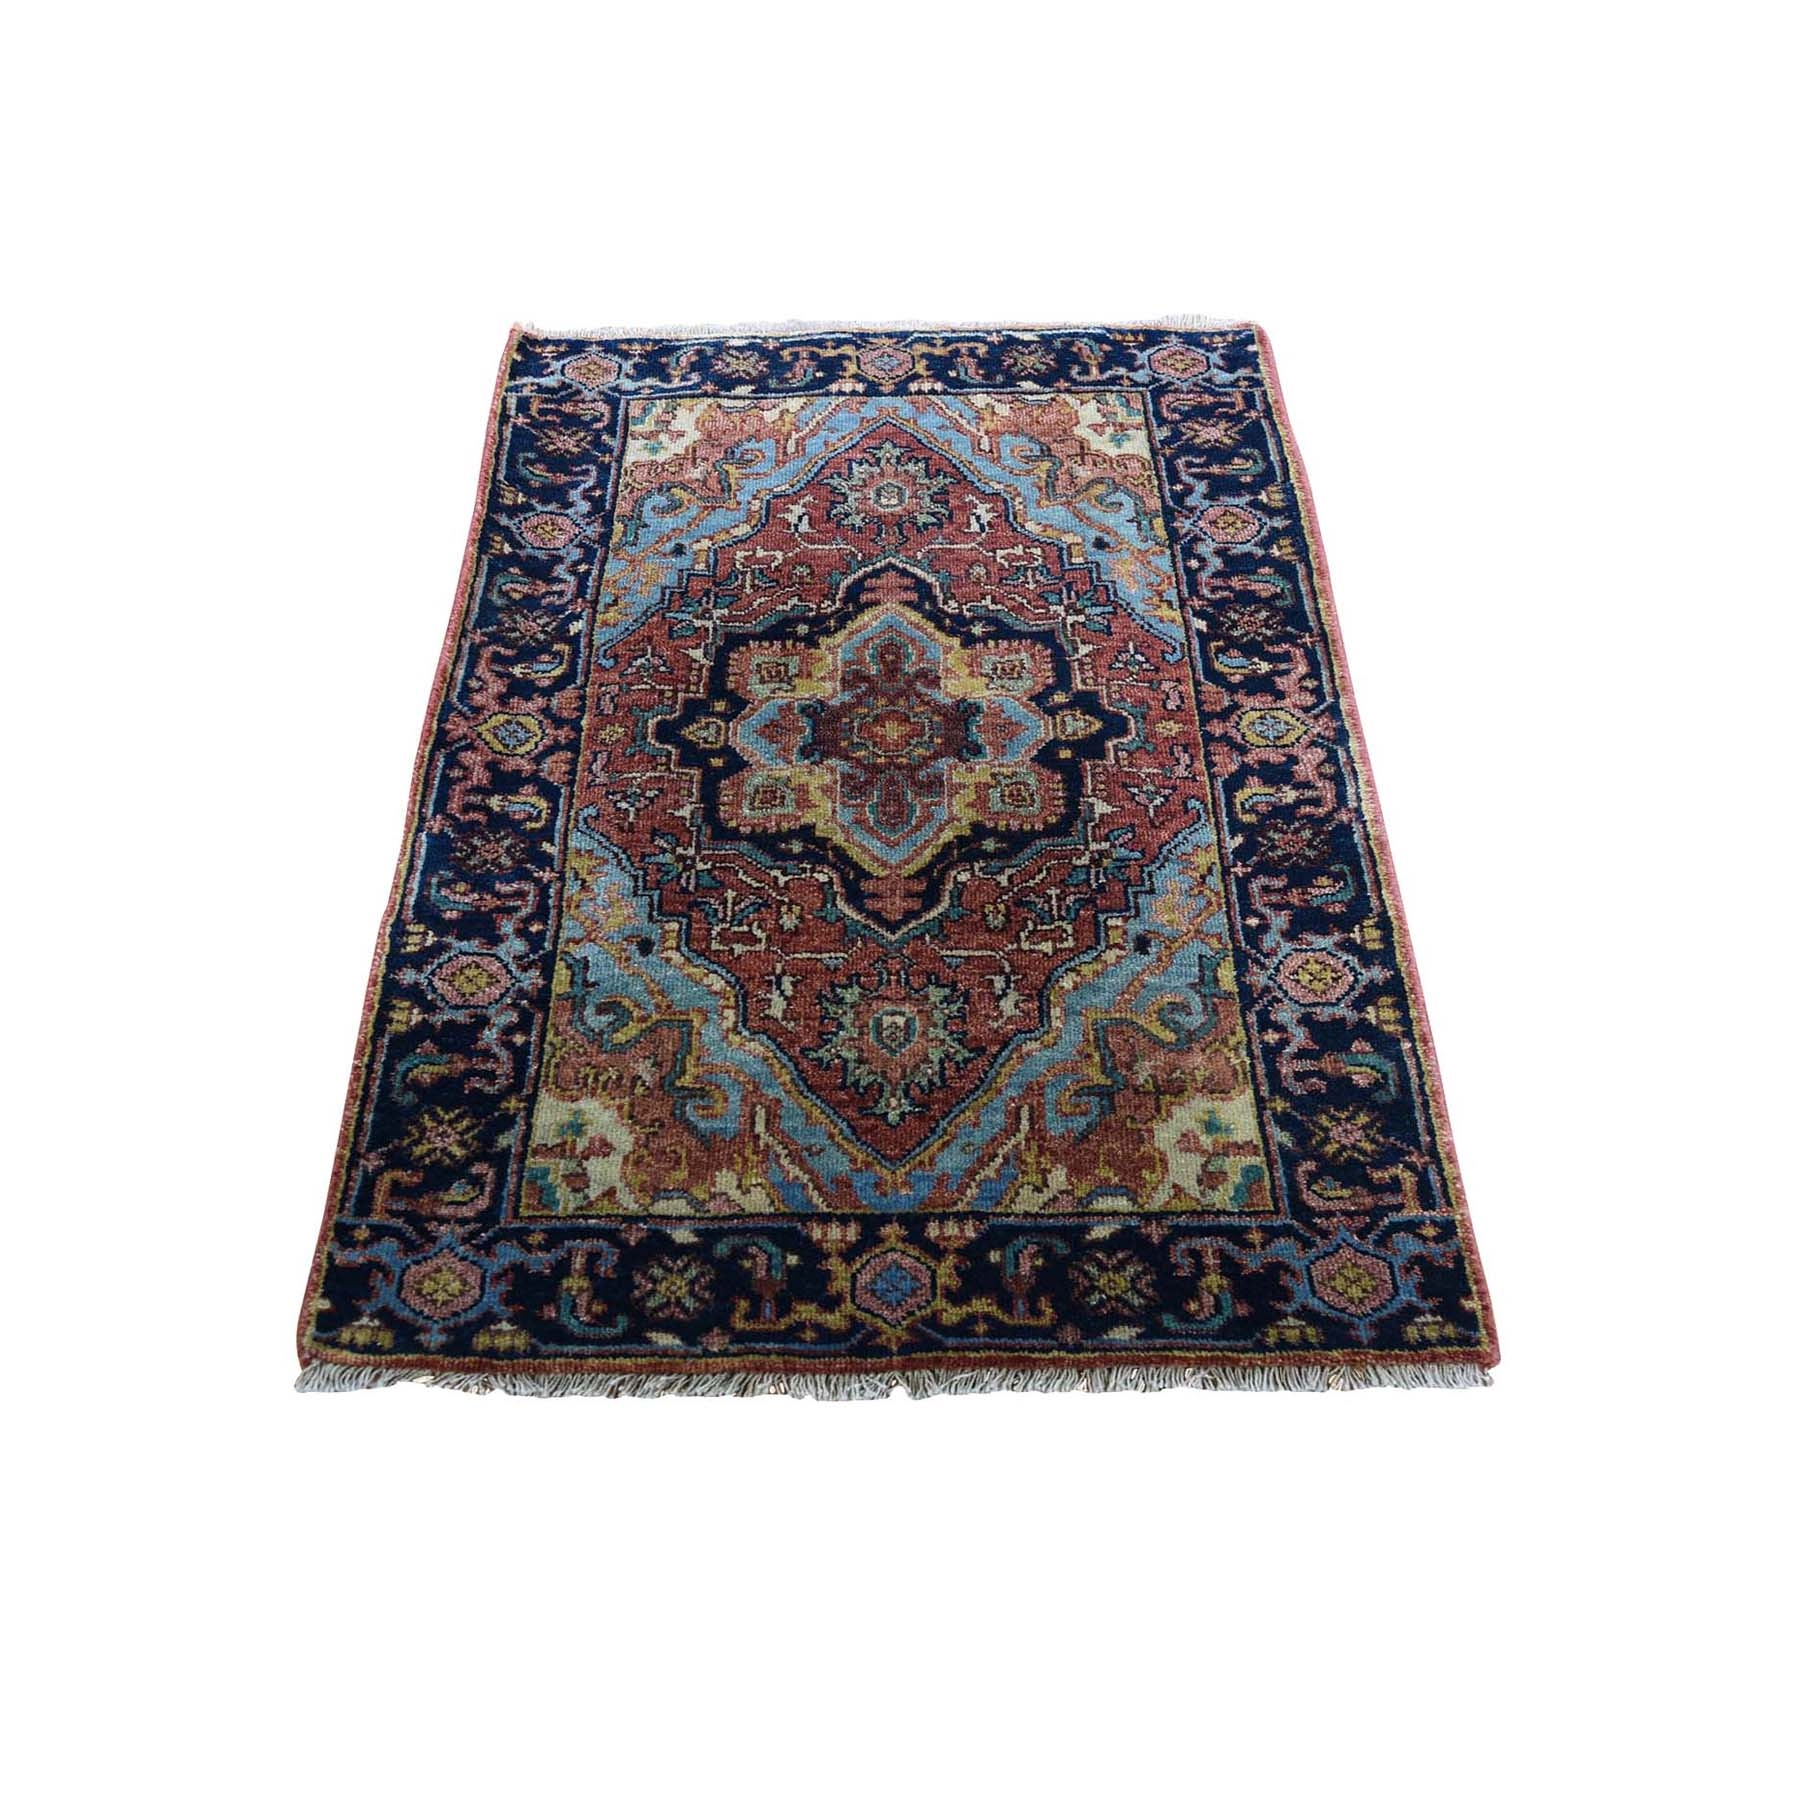 2'X3' Antiqued Heriz Re-Creation Pure Wool Hand-Knotted Oriental Rug moad8ddc